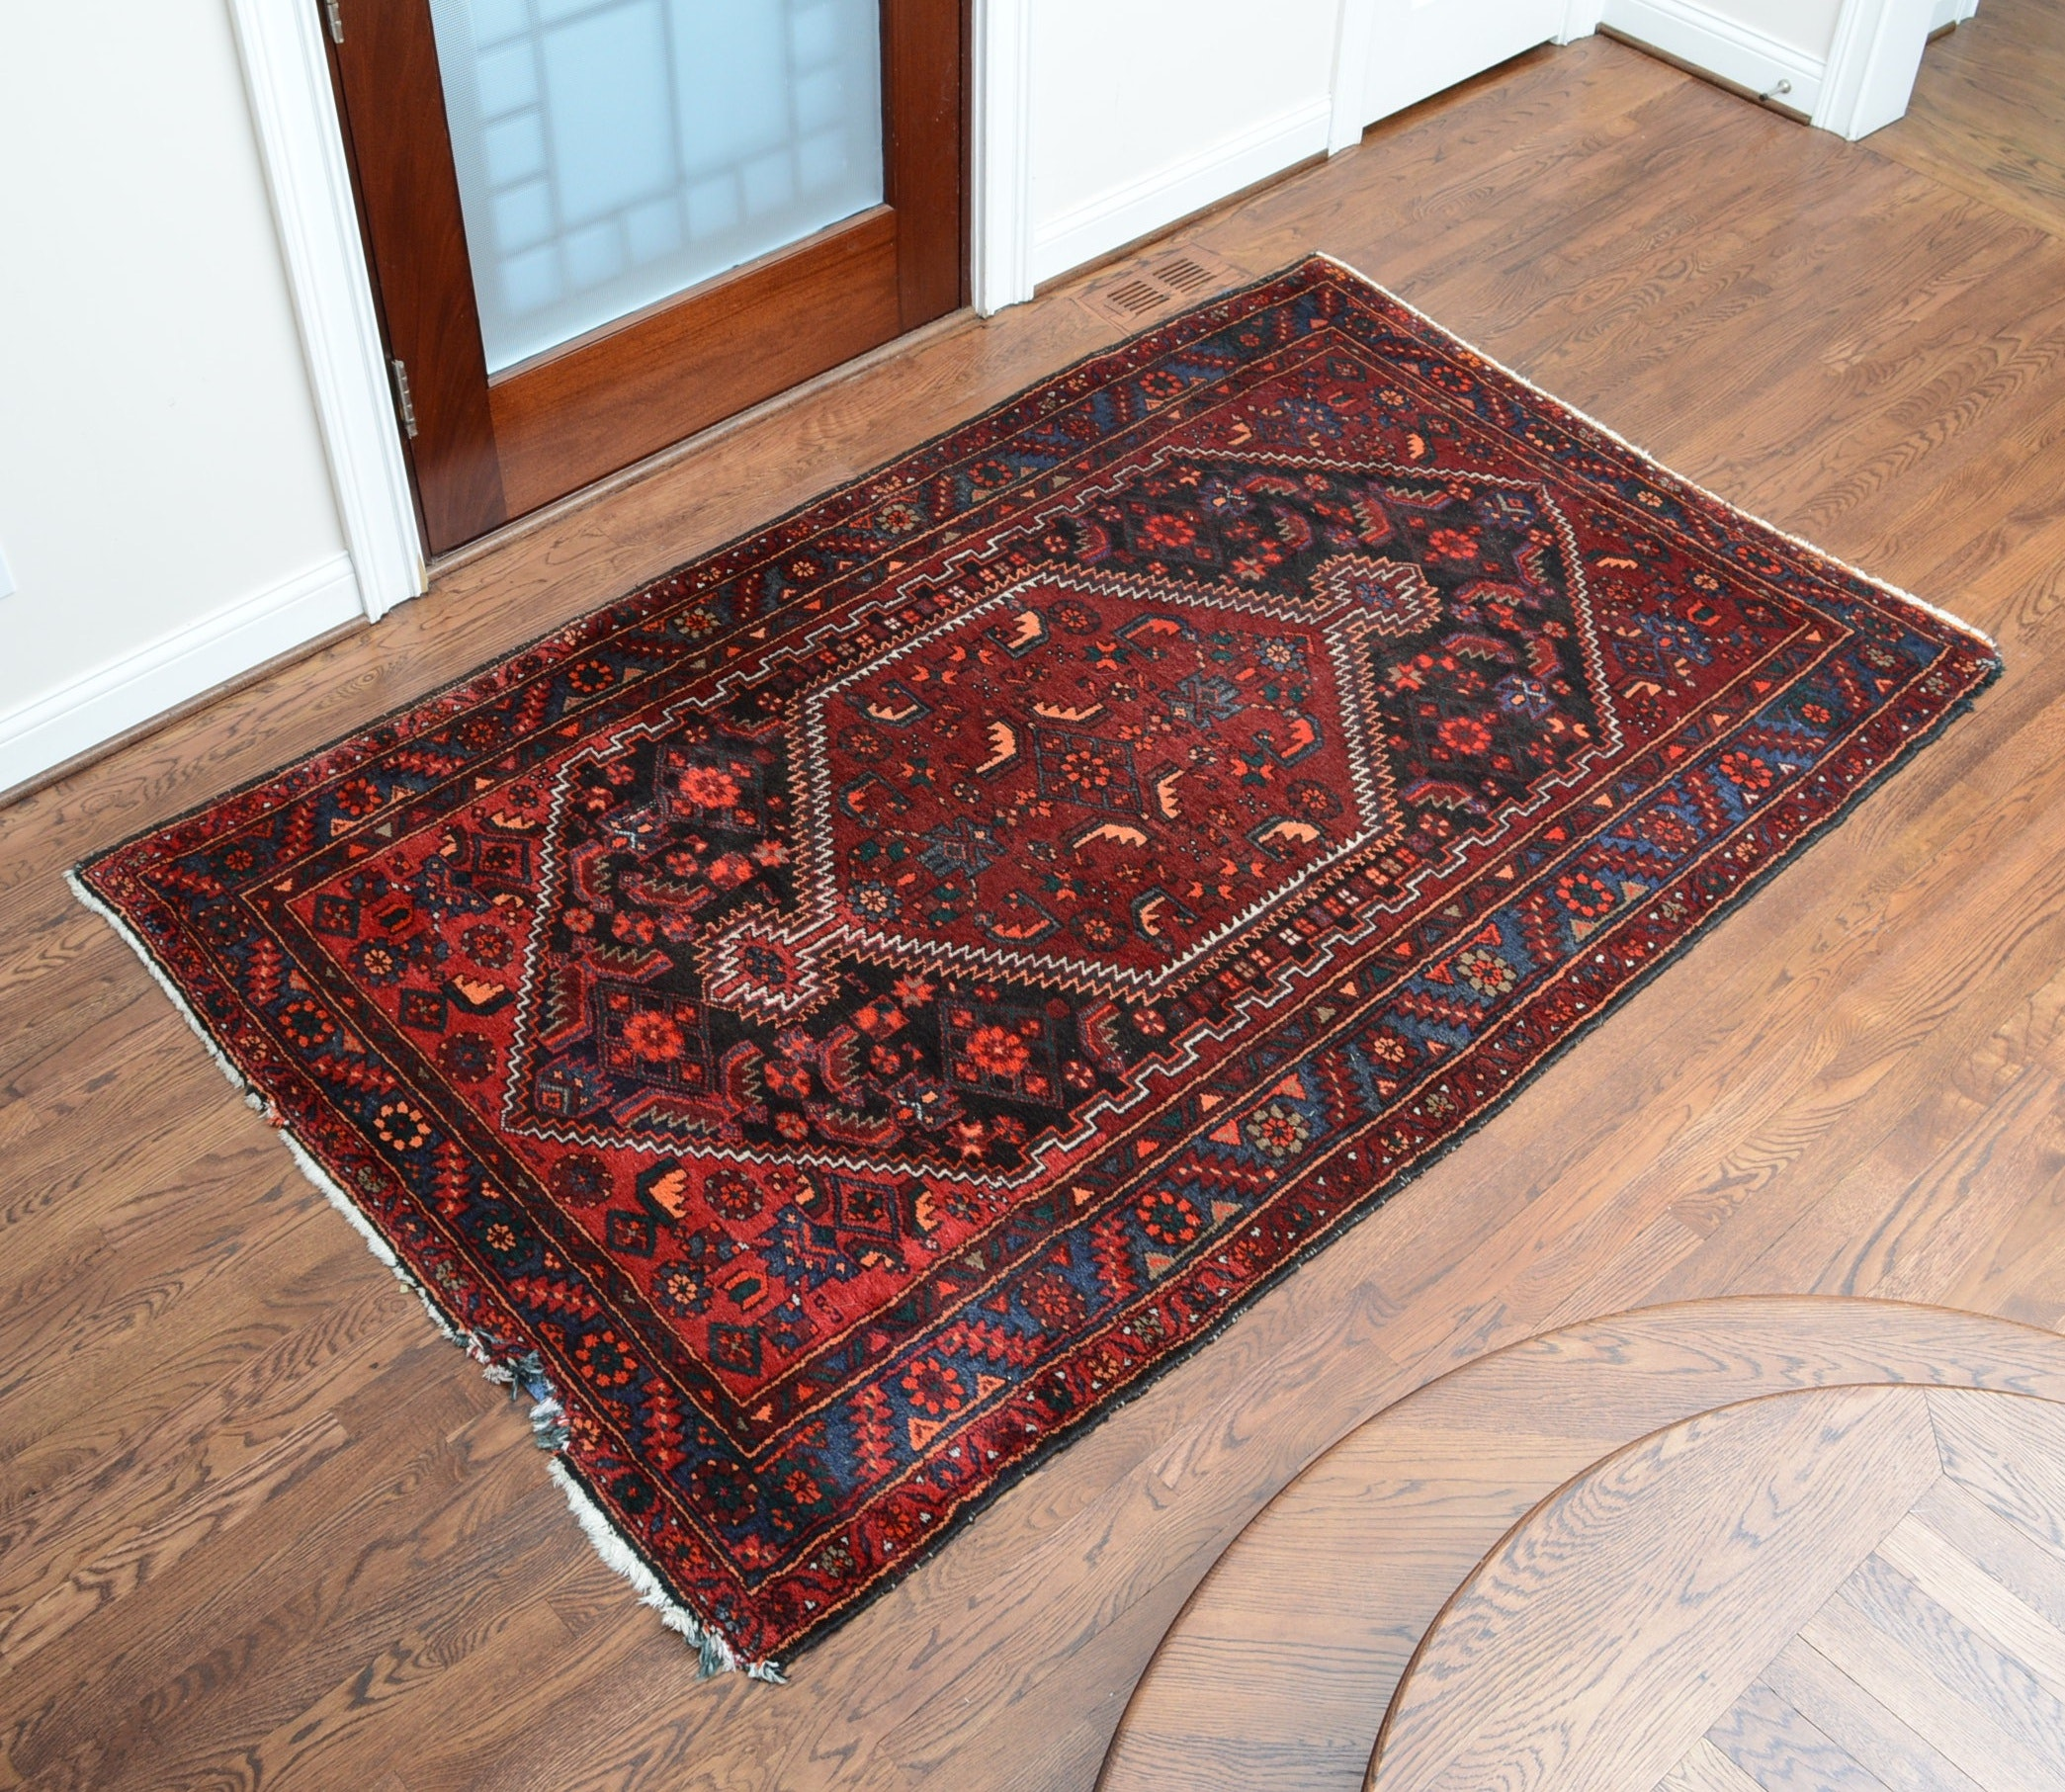 Hand-Knotted Persian Wool Abadeh Area Rug